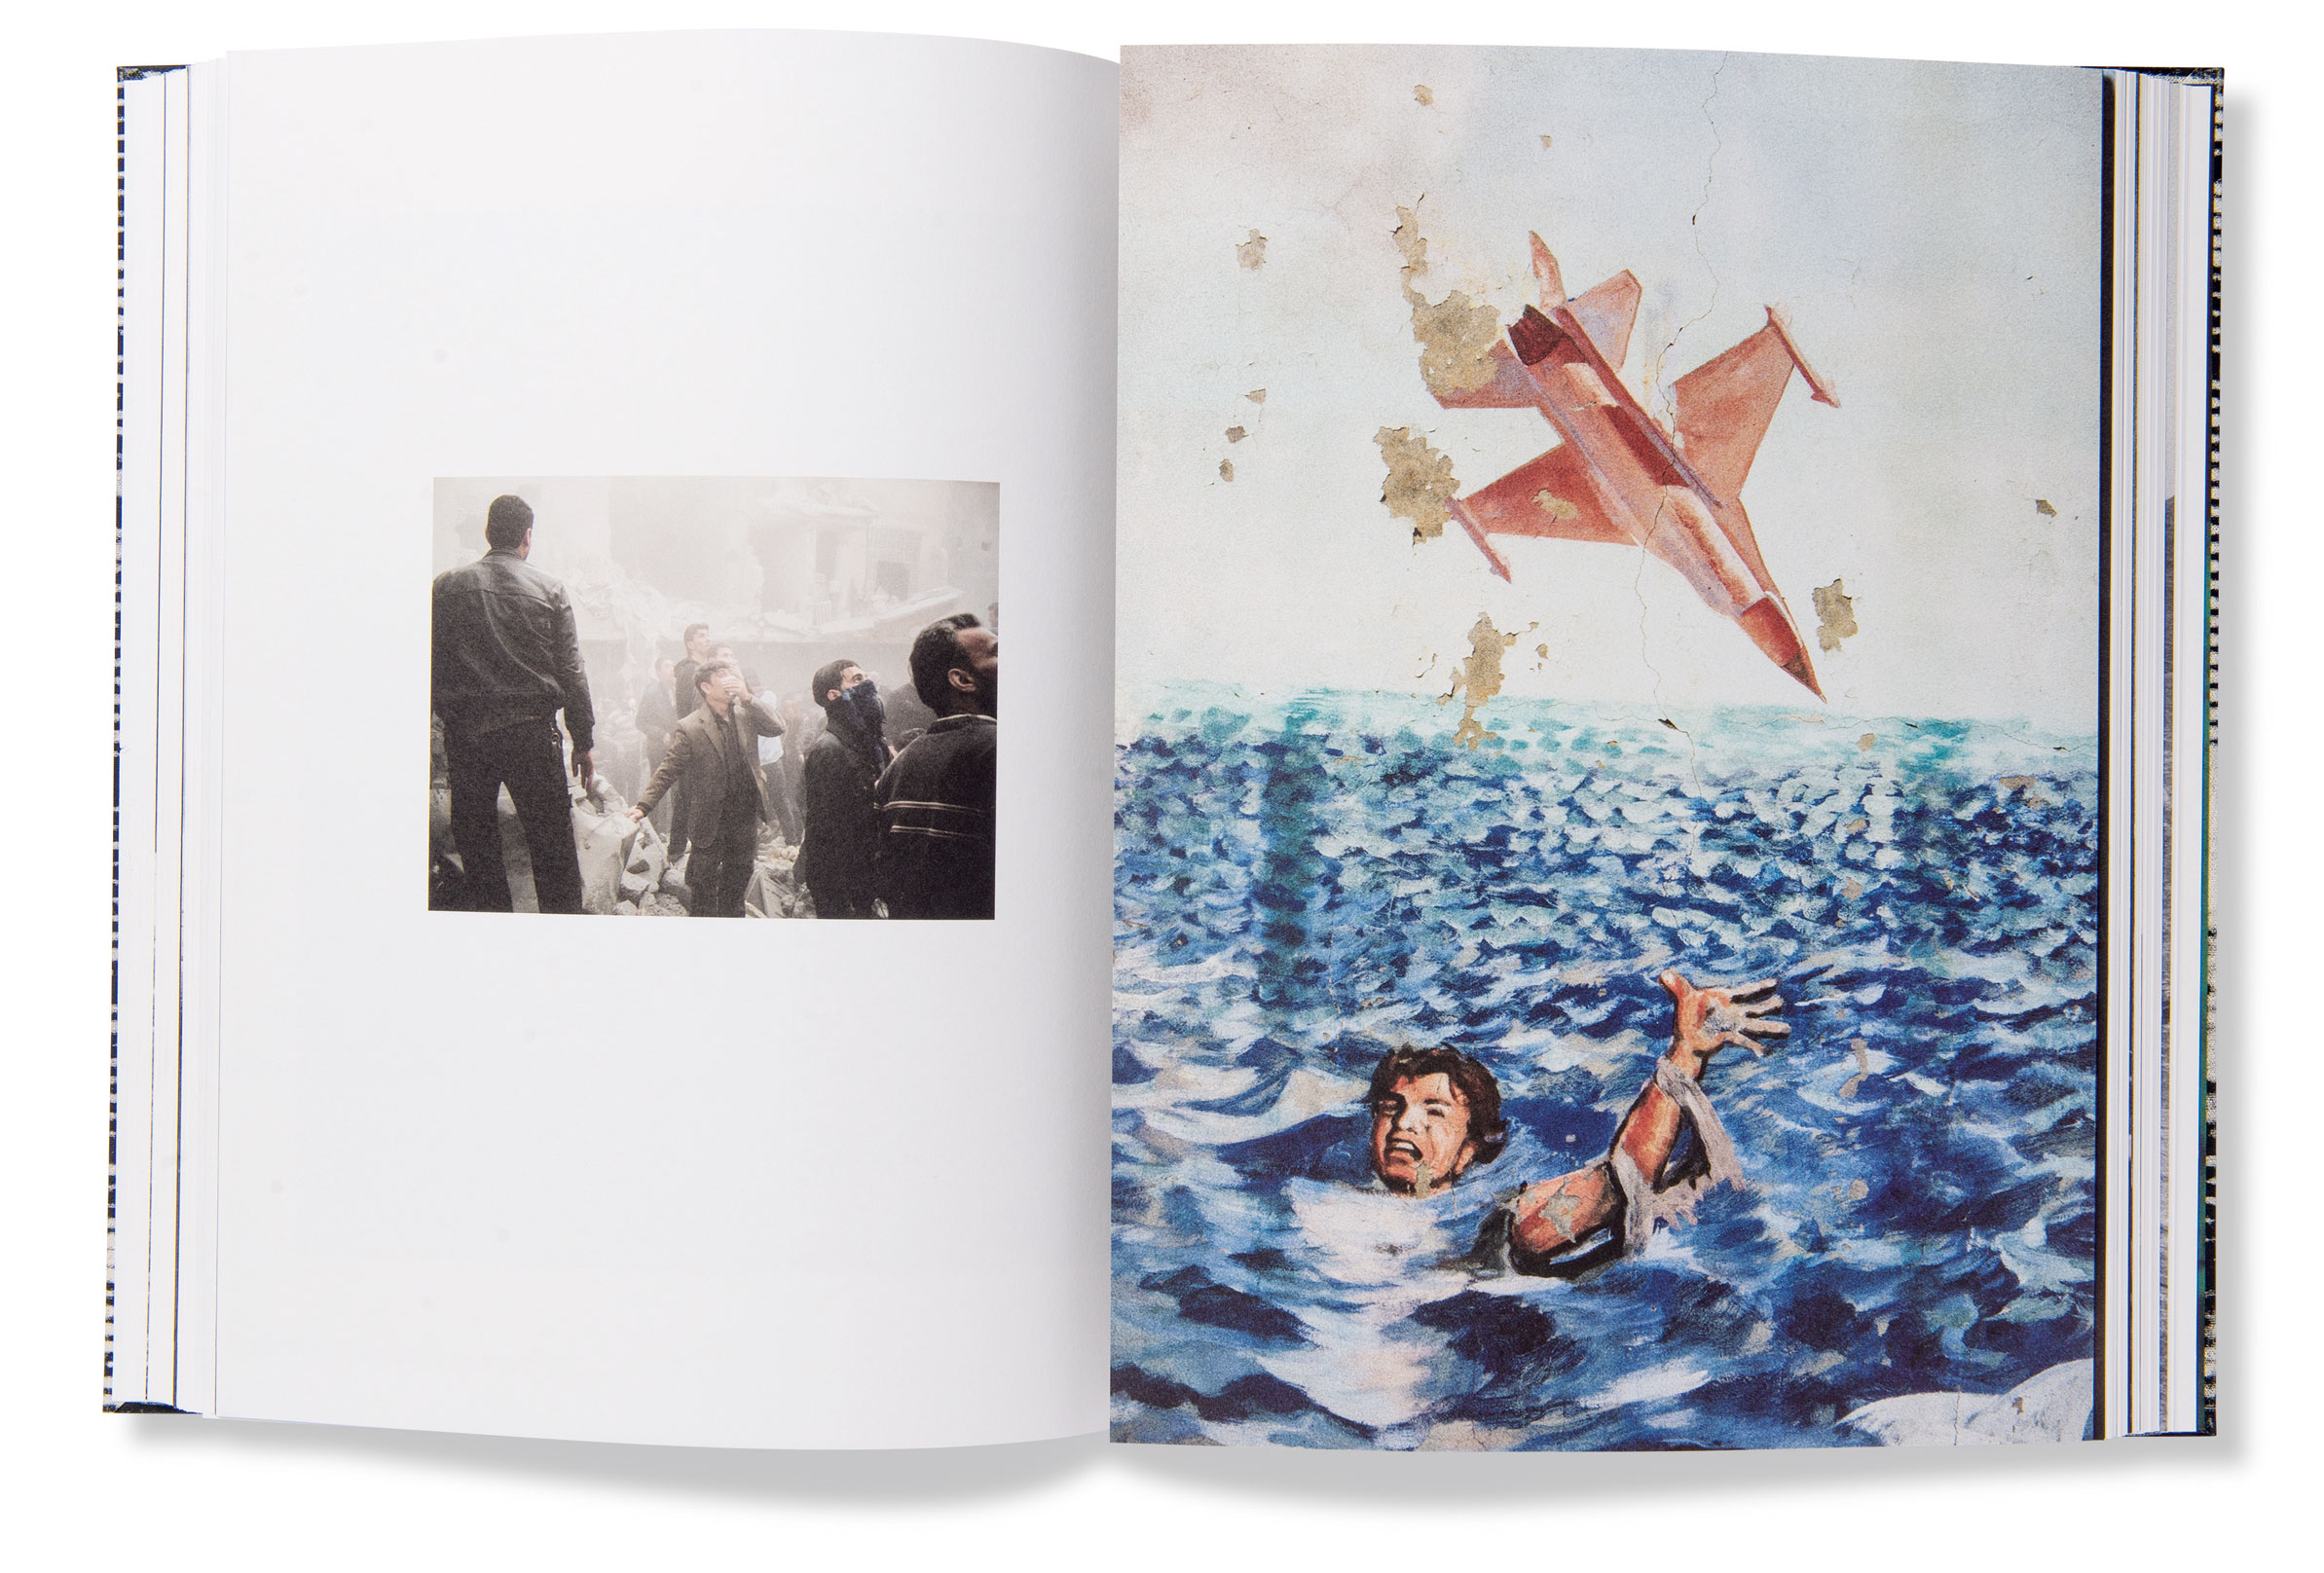 Martin Parr on the timeless power of photobooks